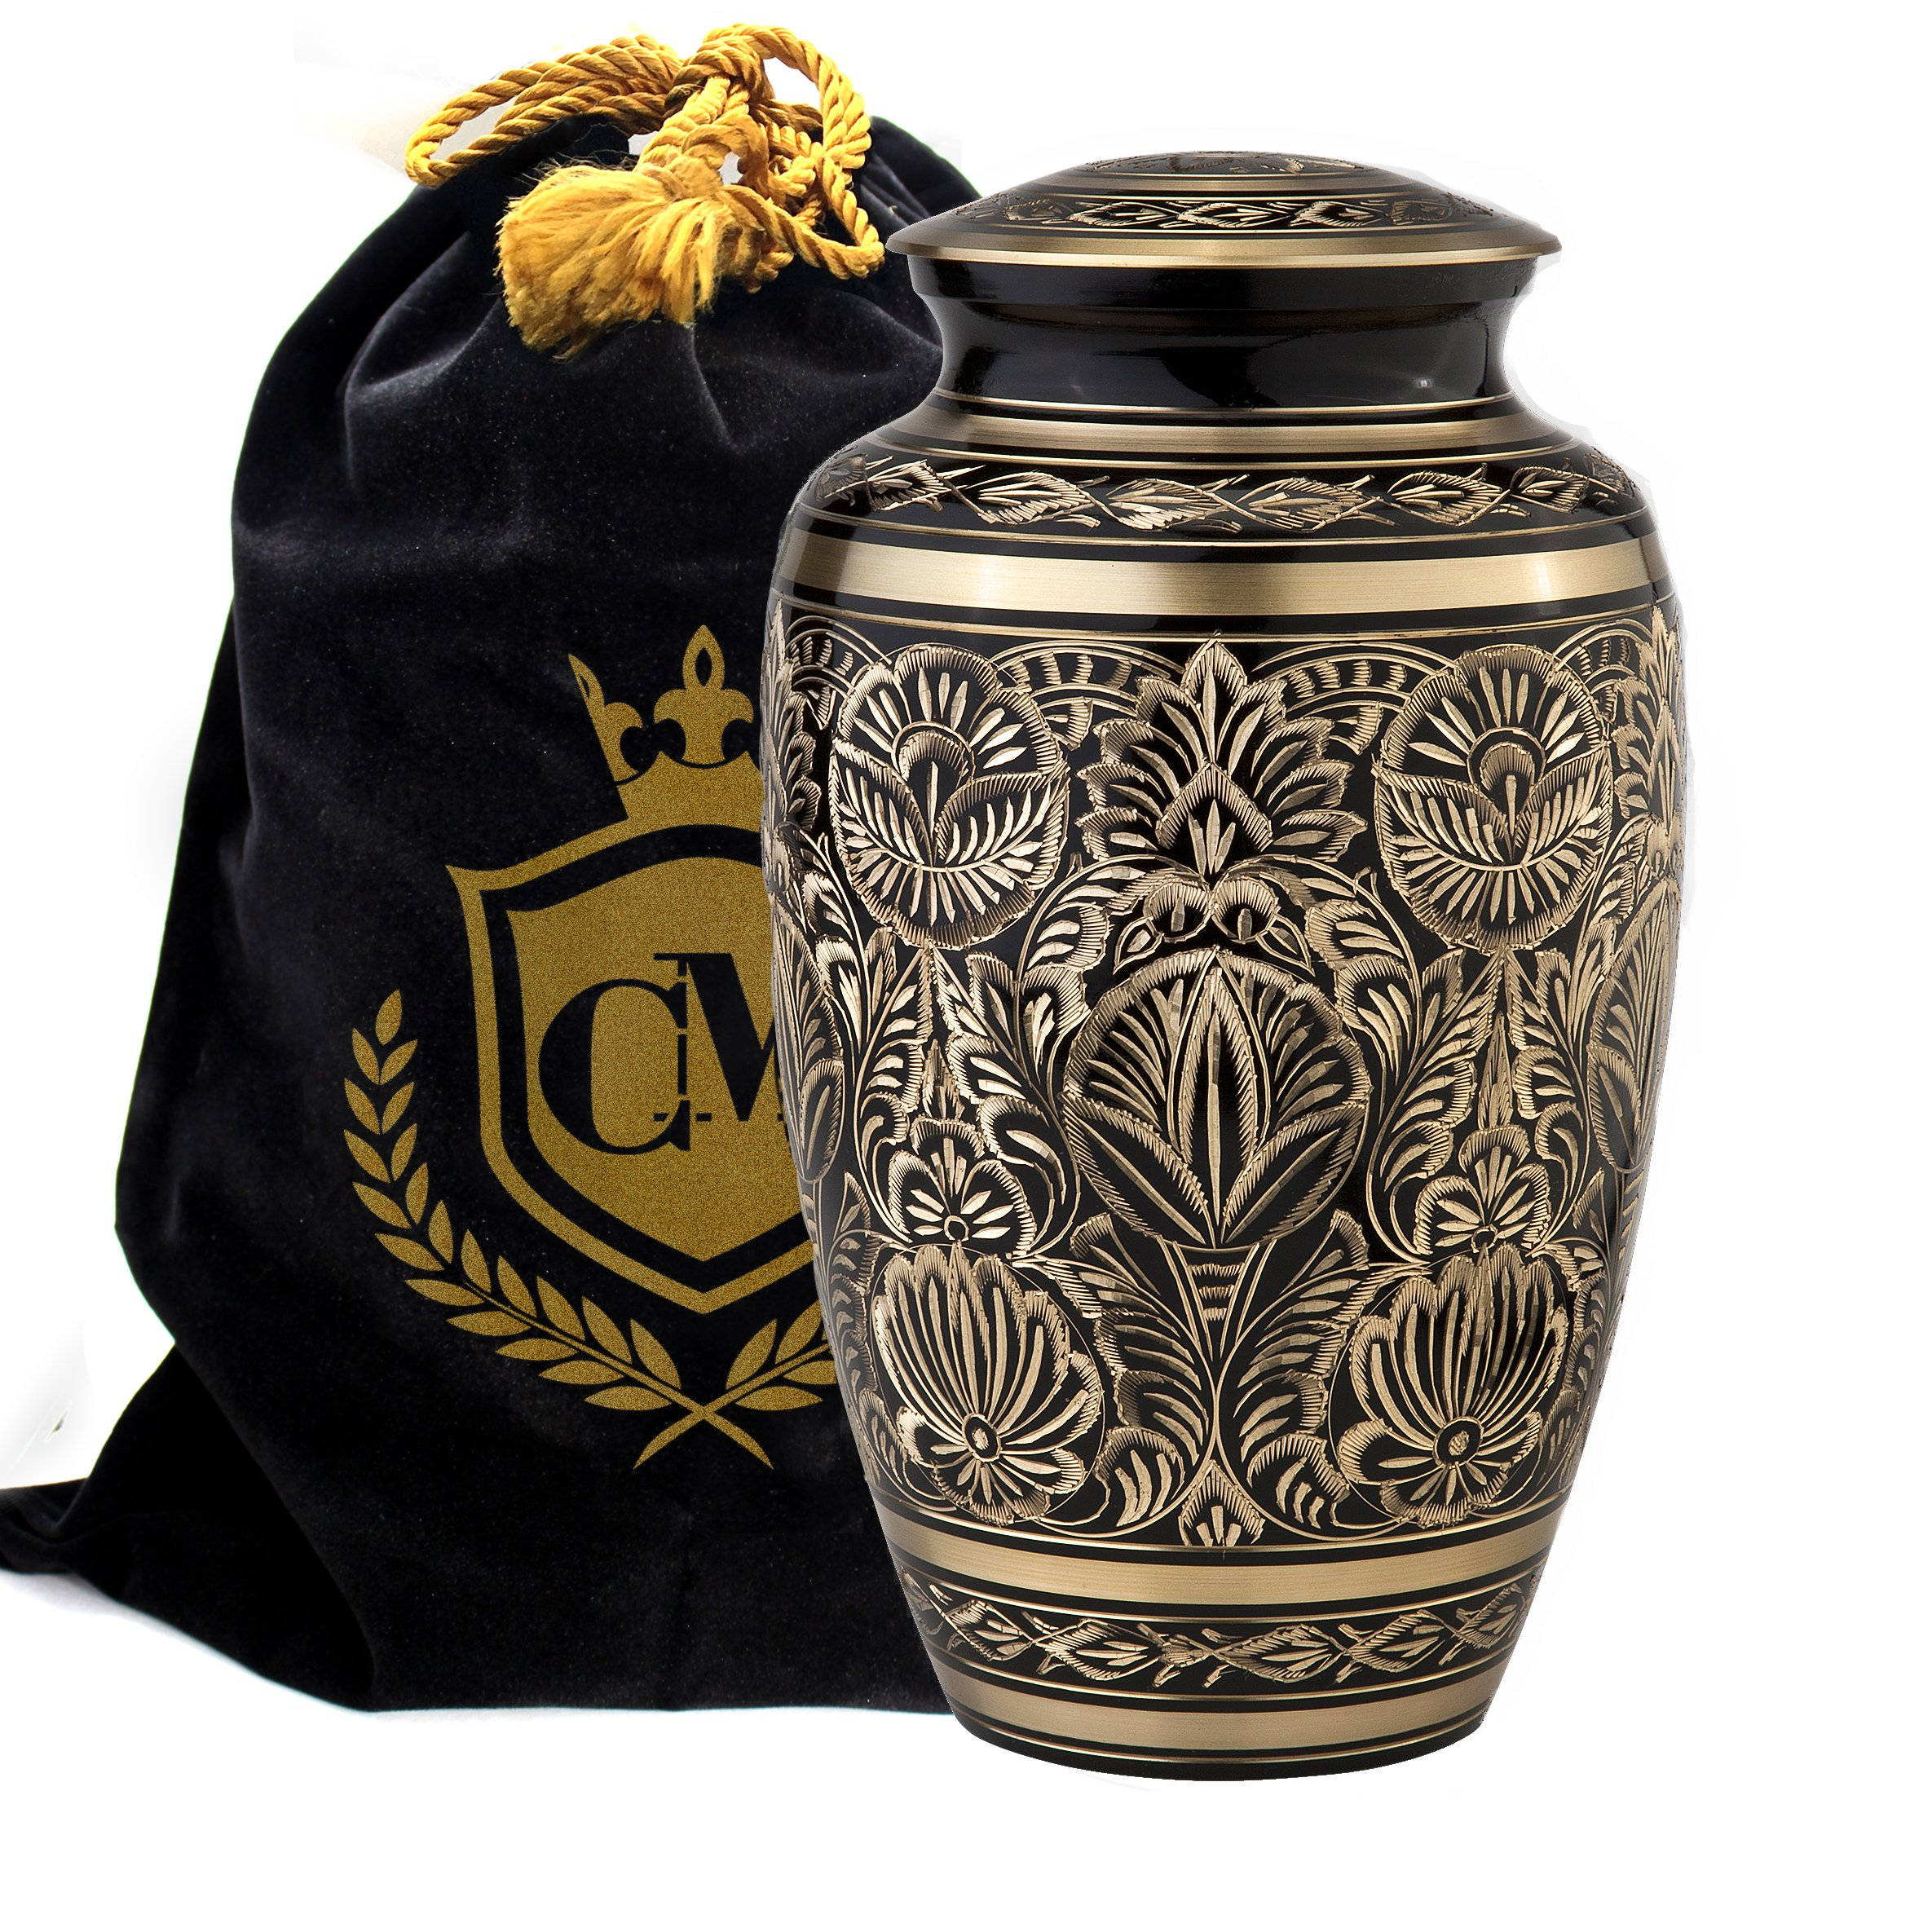 Majestic Radiance 100% Brass Cremation Urn for Human Ashes Large and Small (Large)… by Connolly Memorials (Image #1)